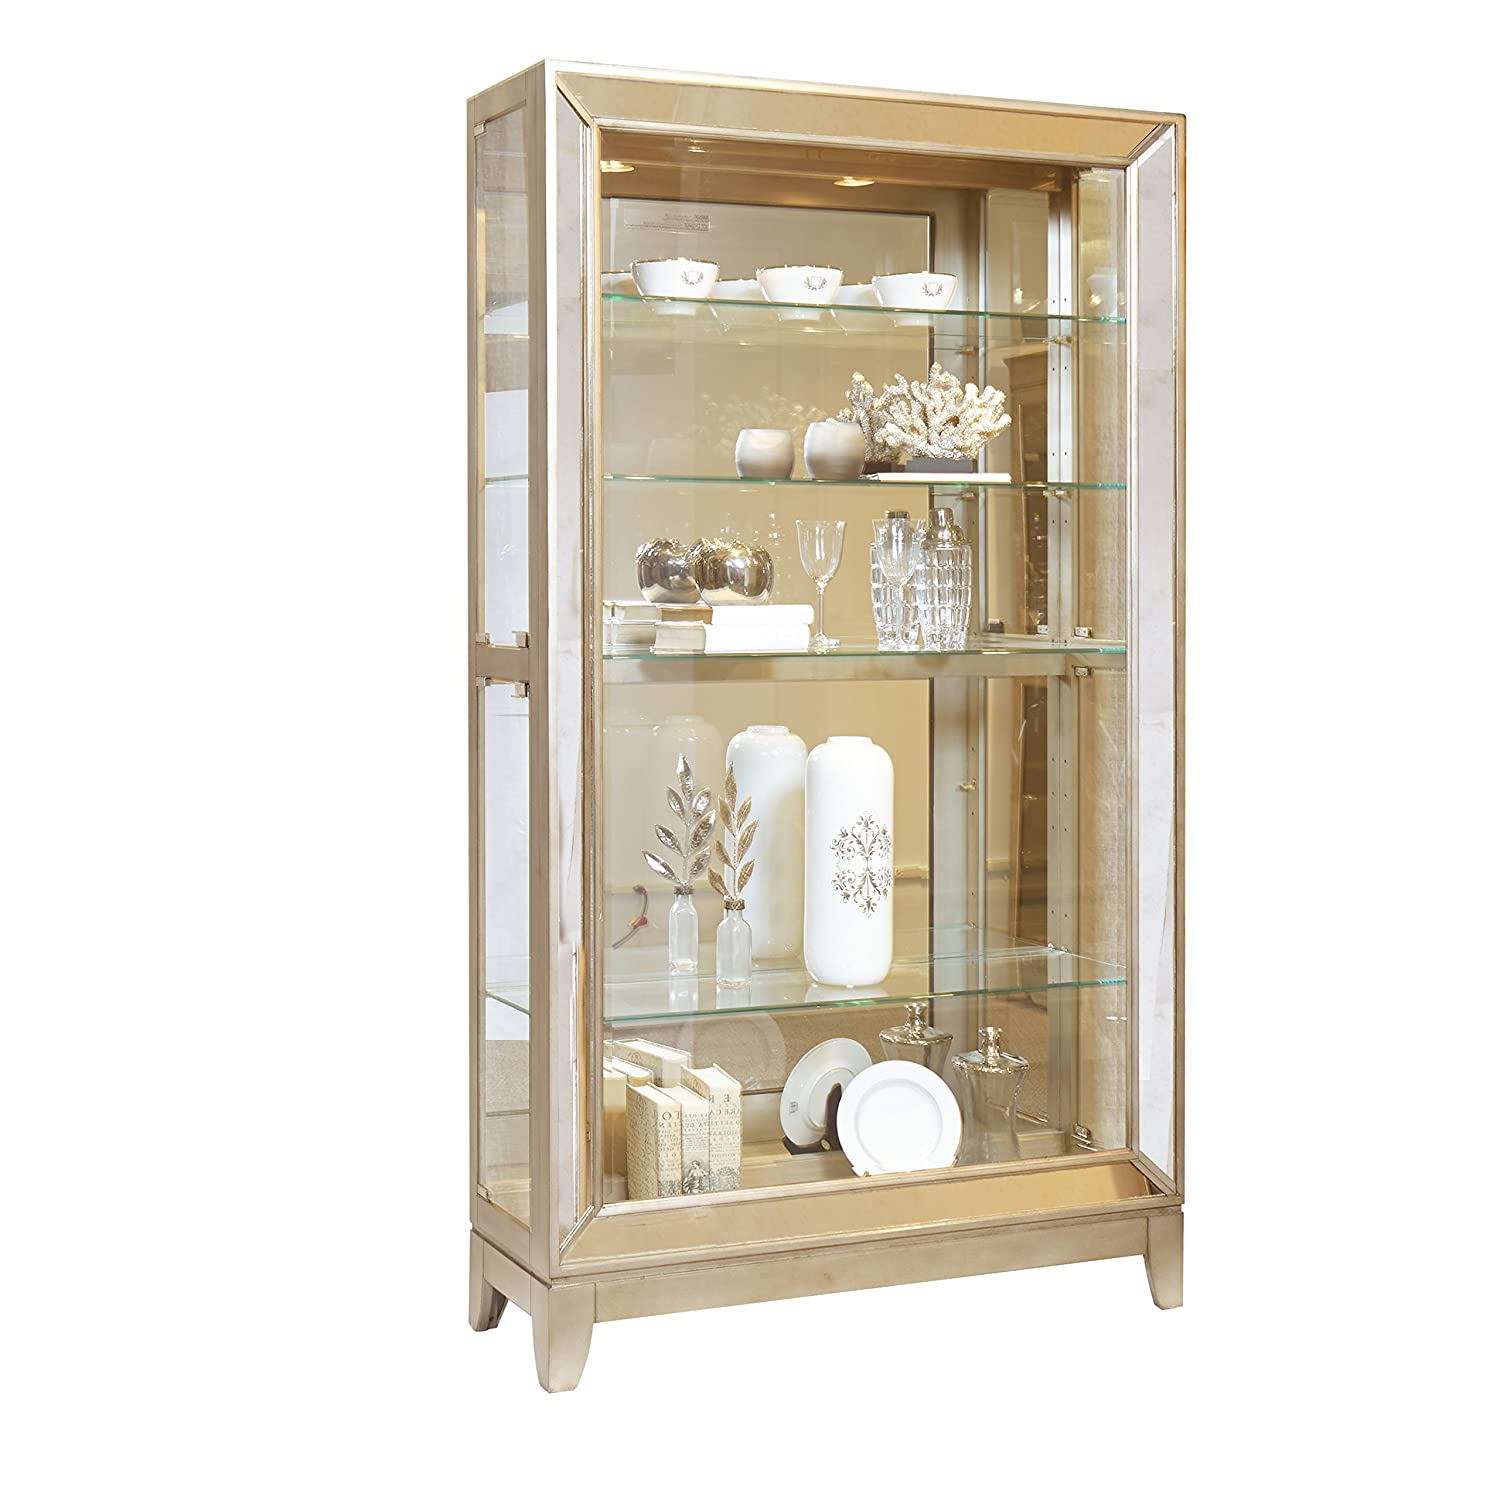 largeio wood magnificent full inspirations large cabinets curioet photo size display curio stirring plans planslarge cabinet shelveslarge images with of console inspirationsets glass